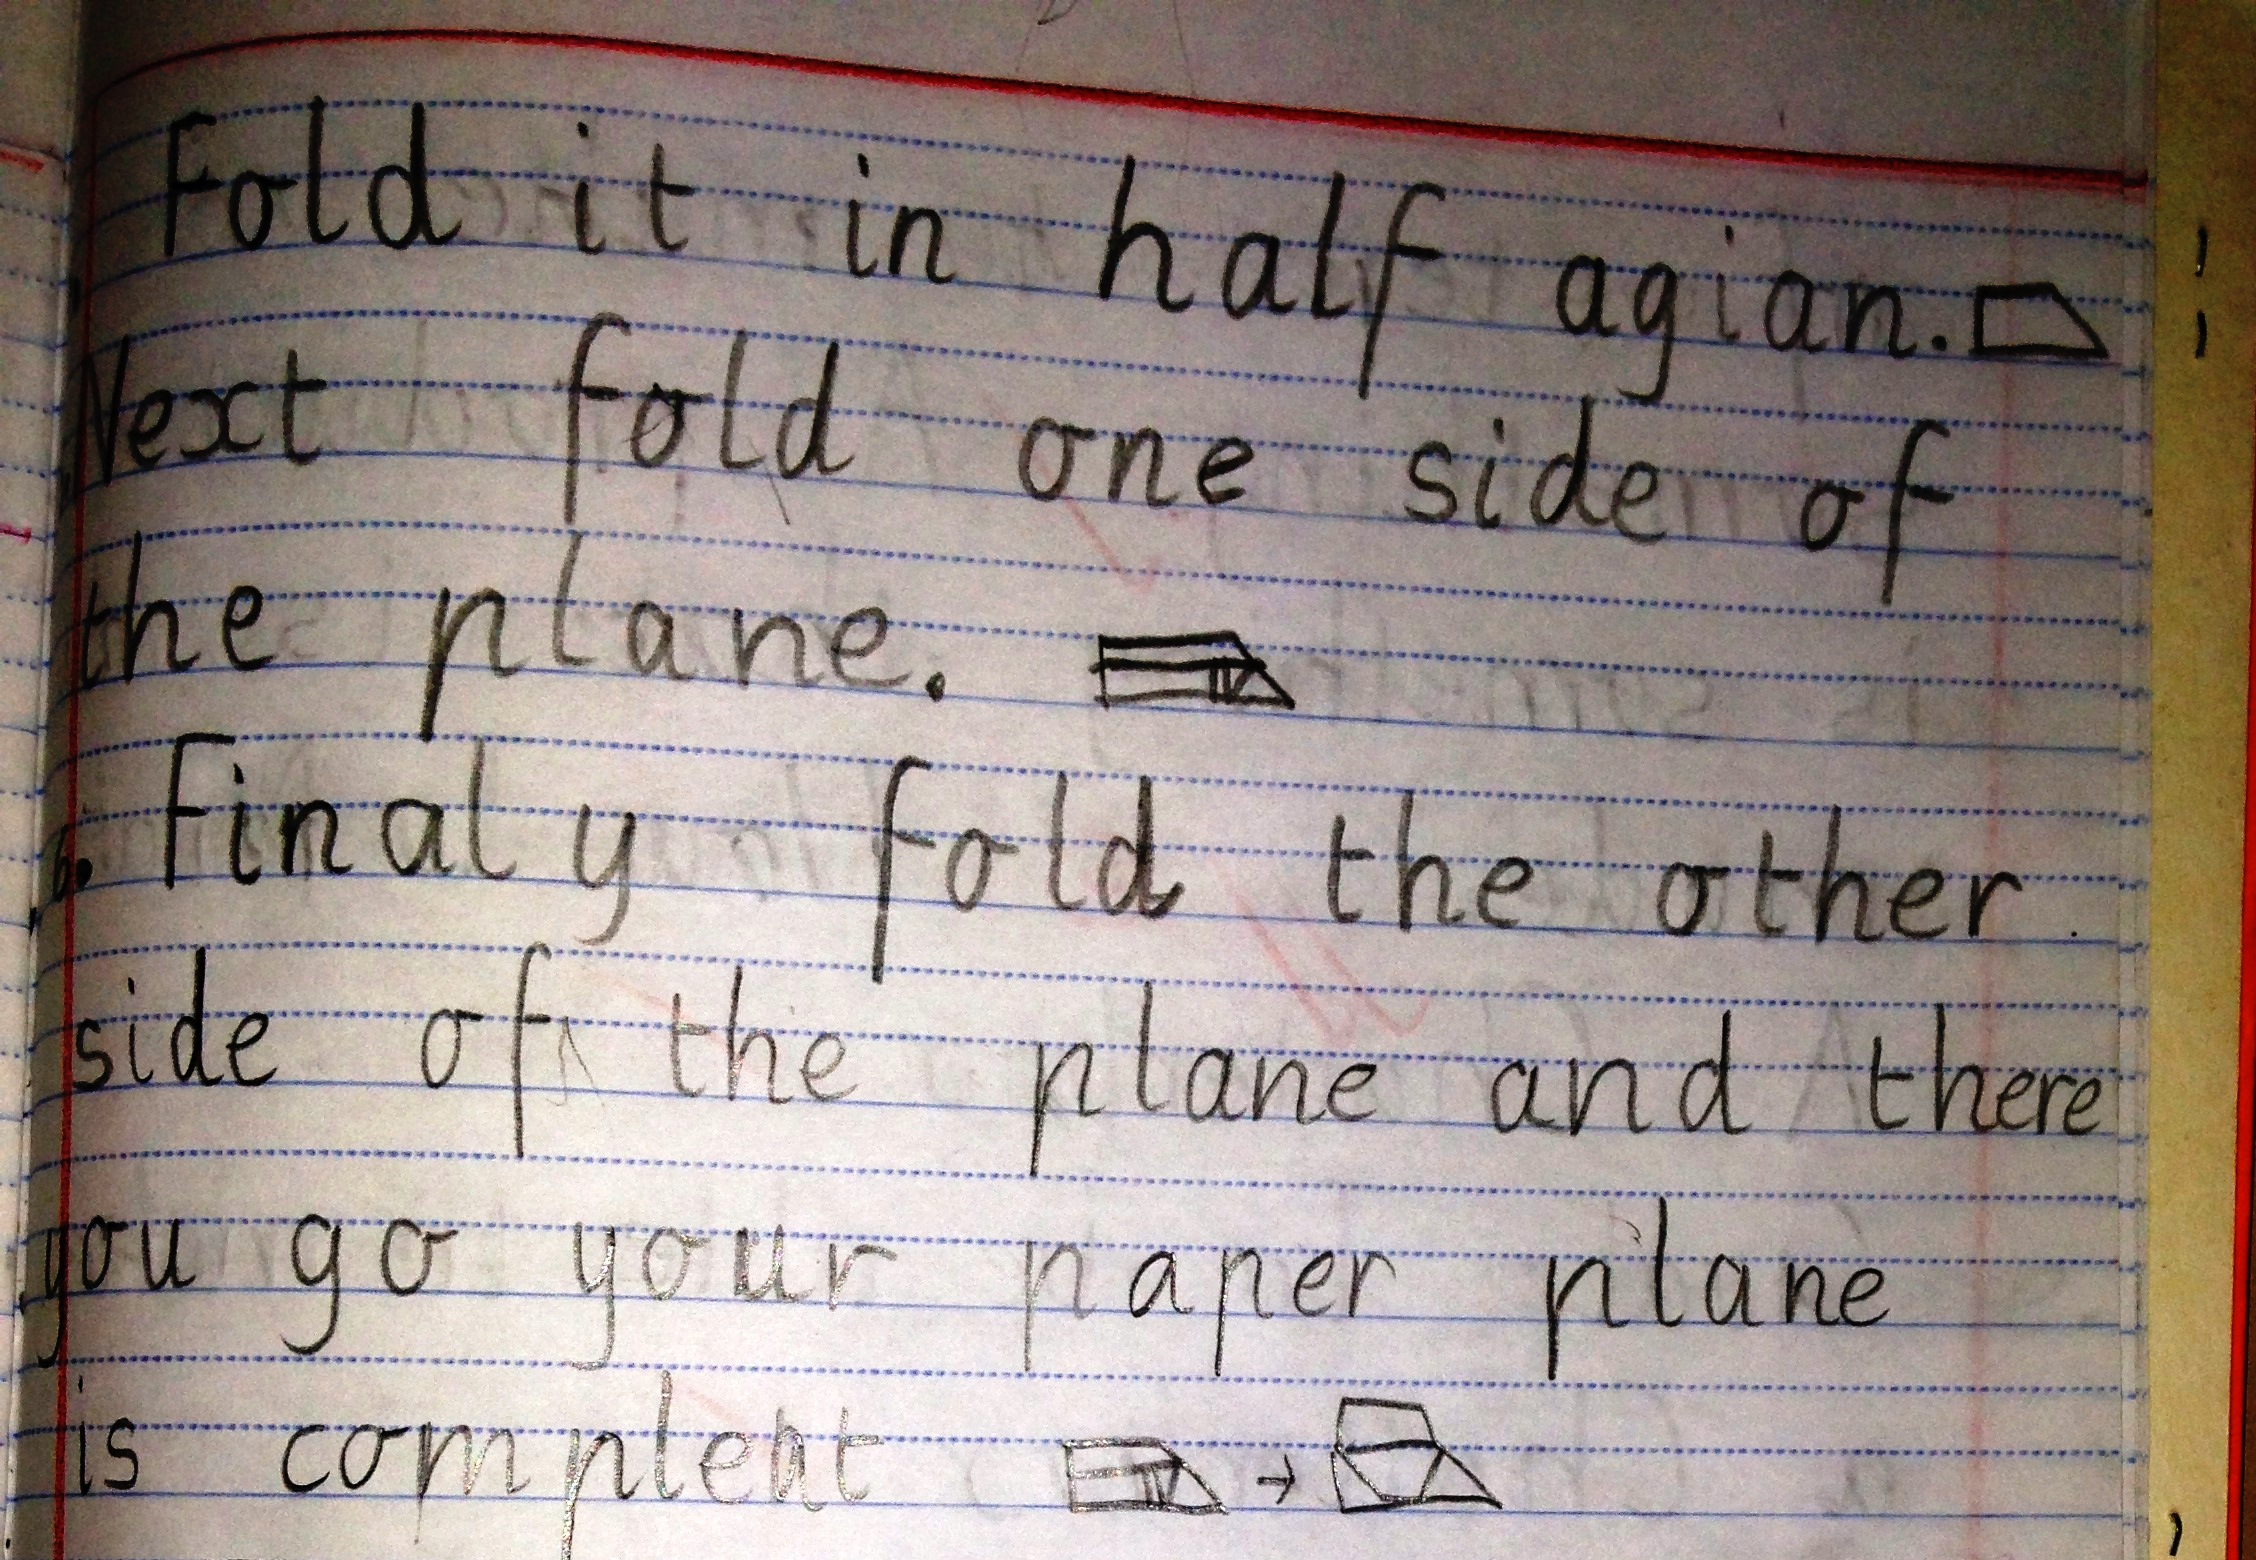 written instructions on how to make a paper airplane